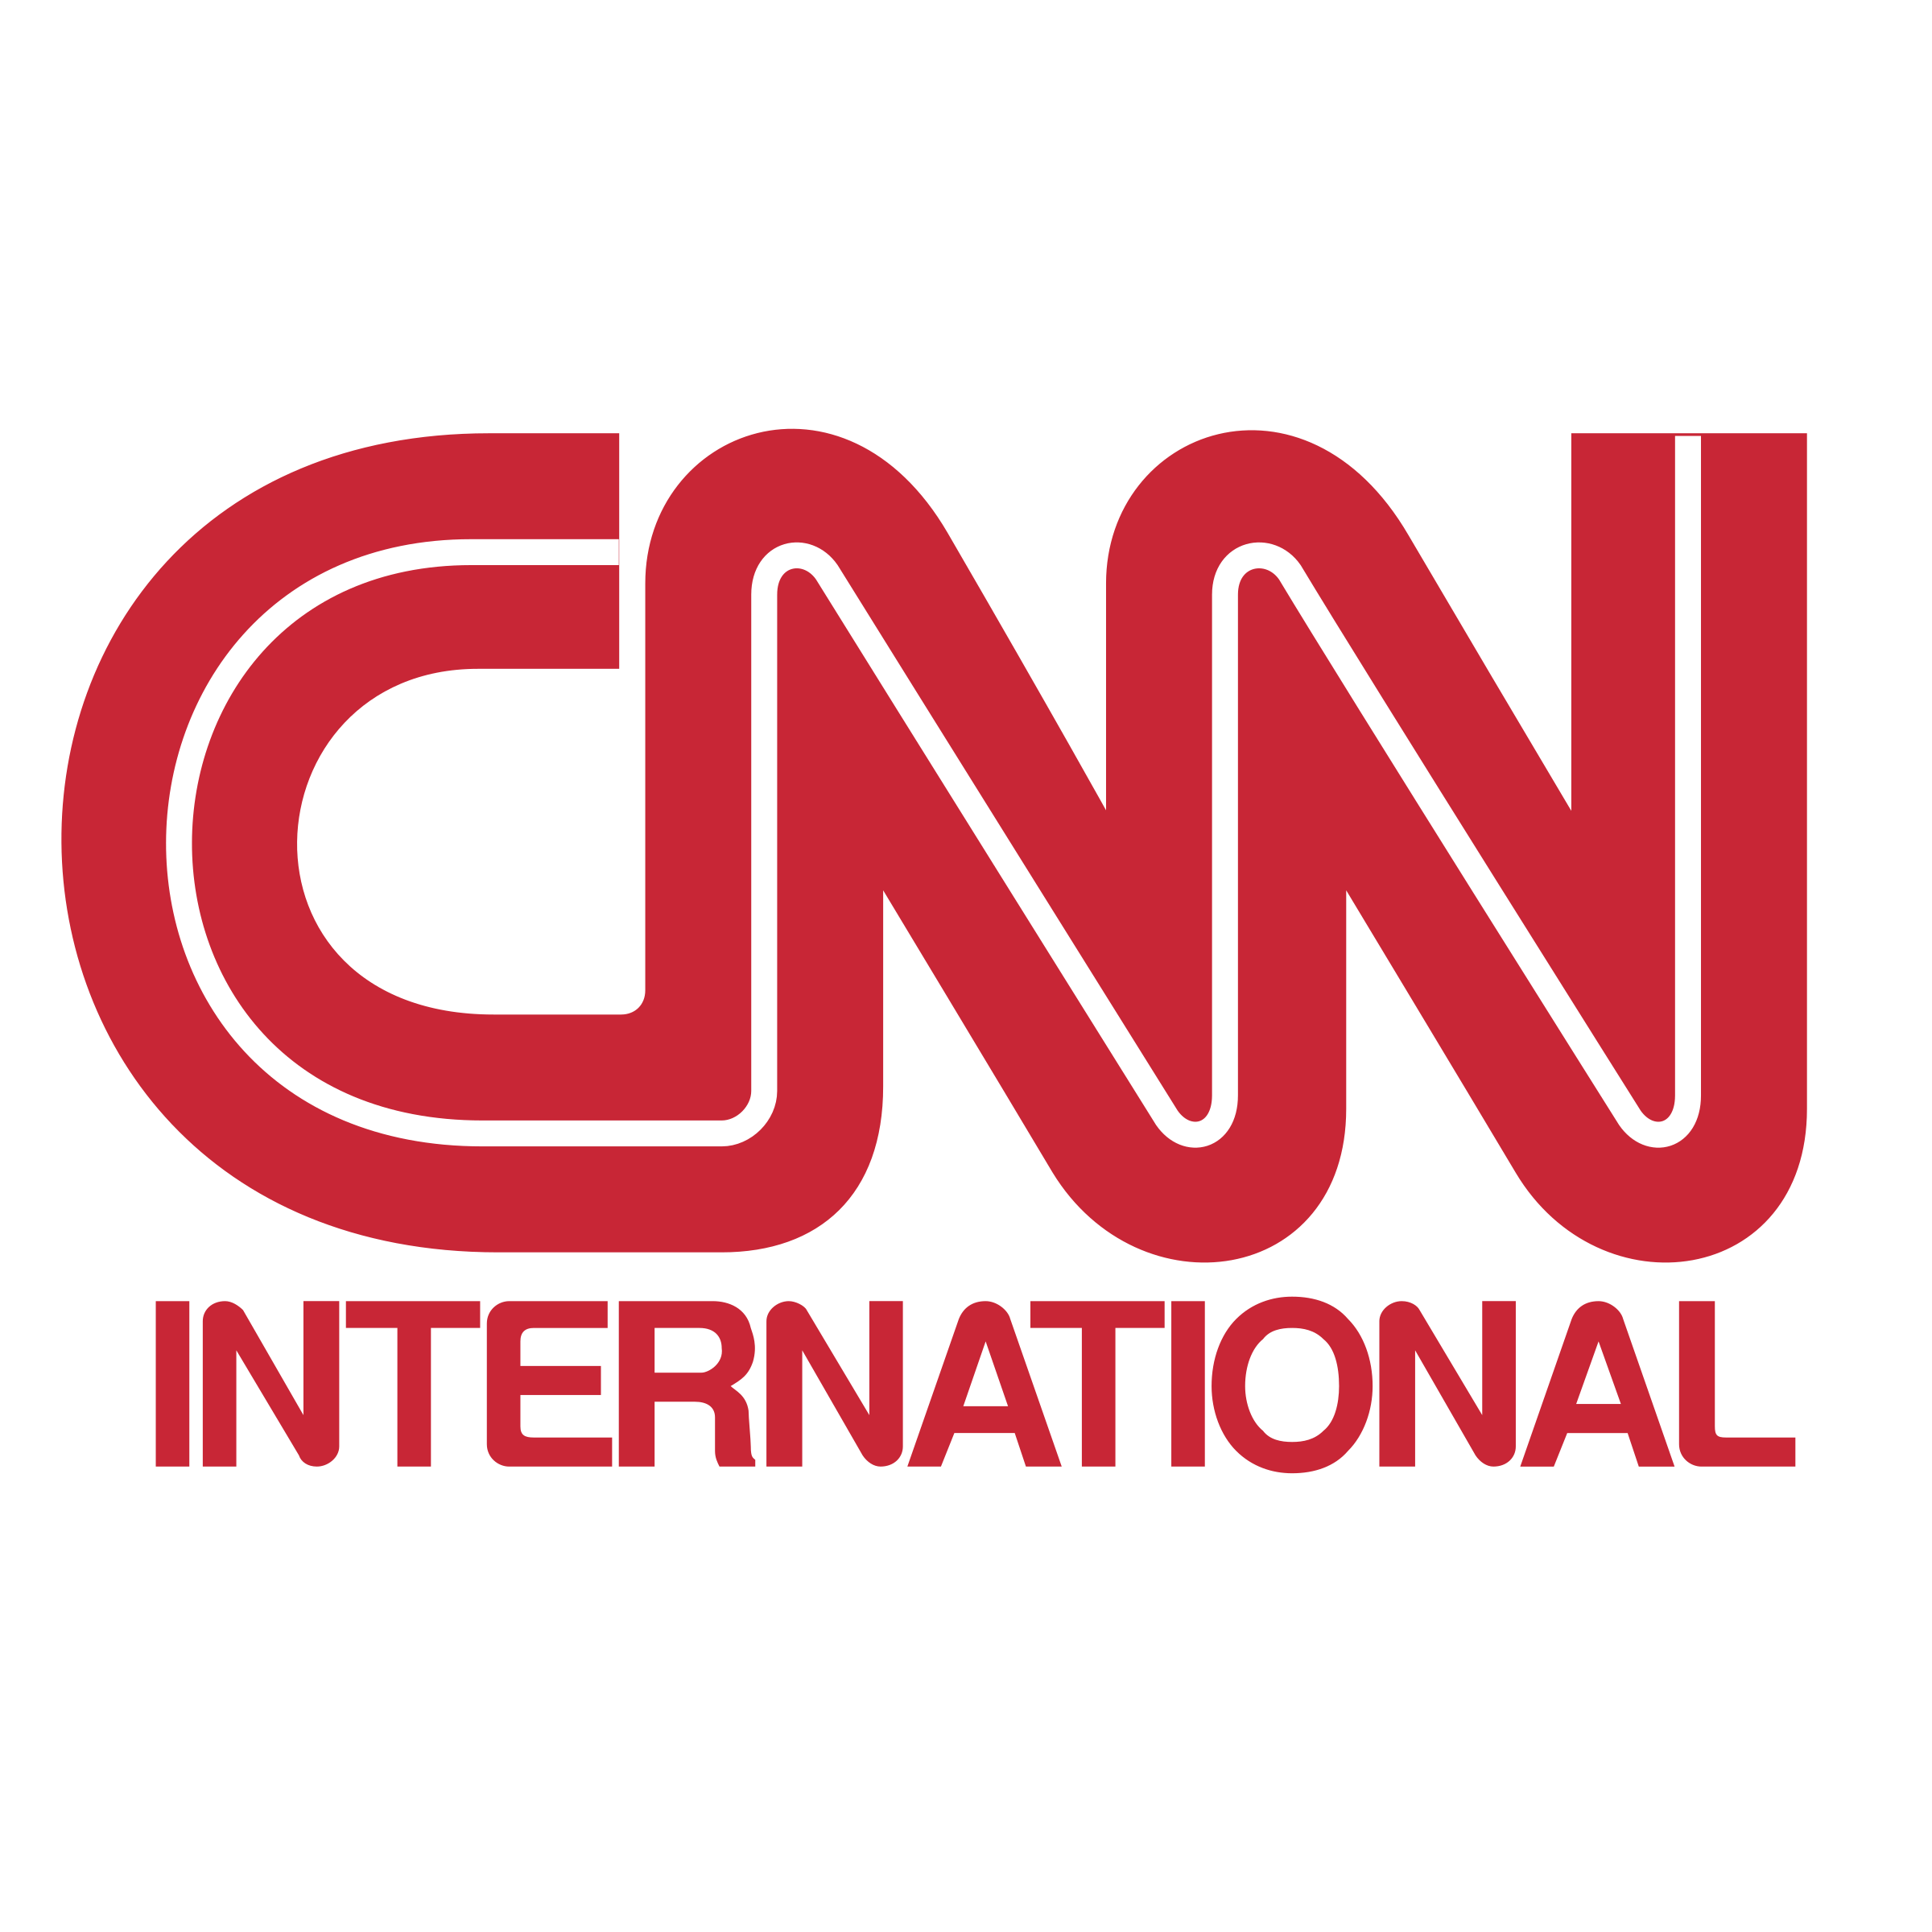 CNN international Channel